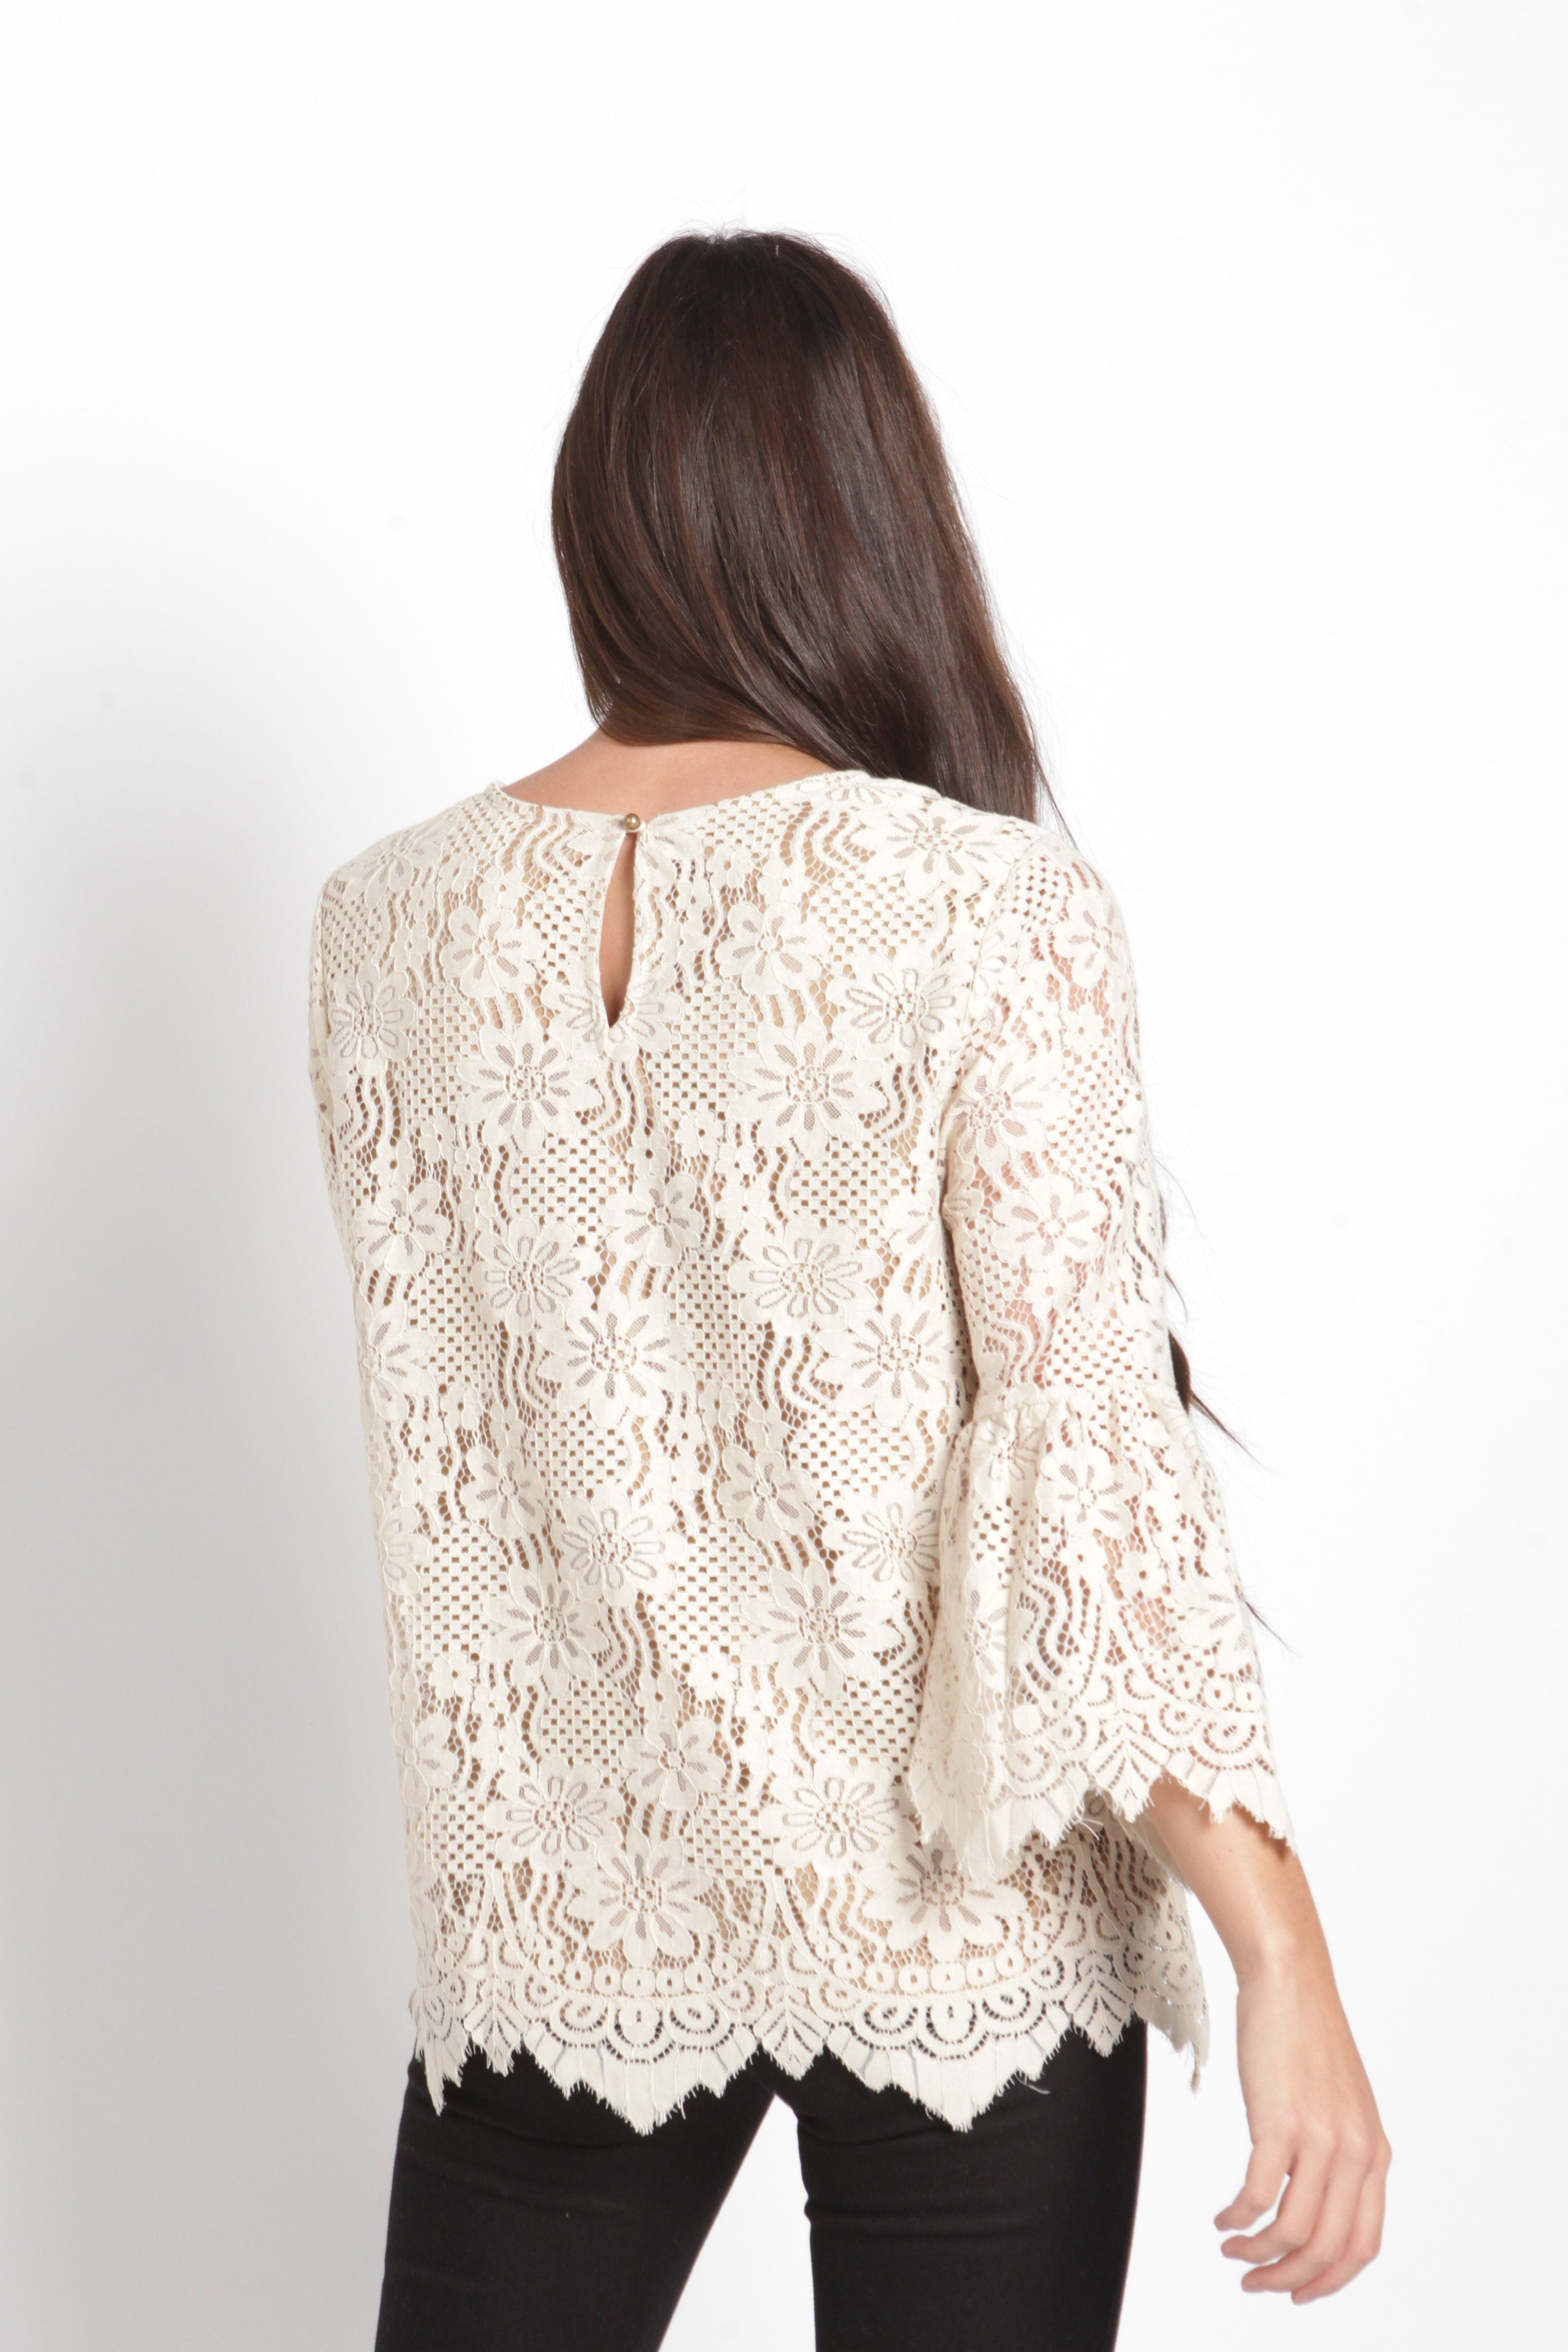 Chloe Top - Taupe